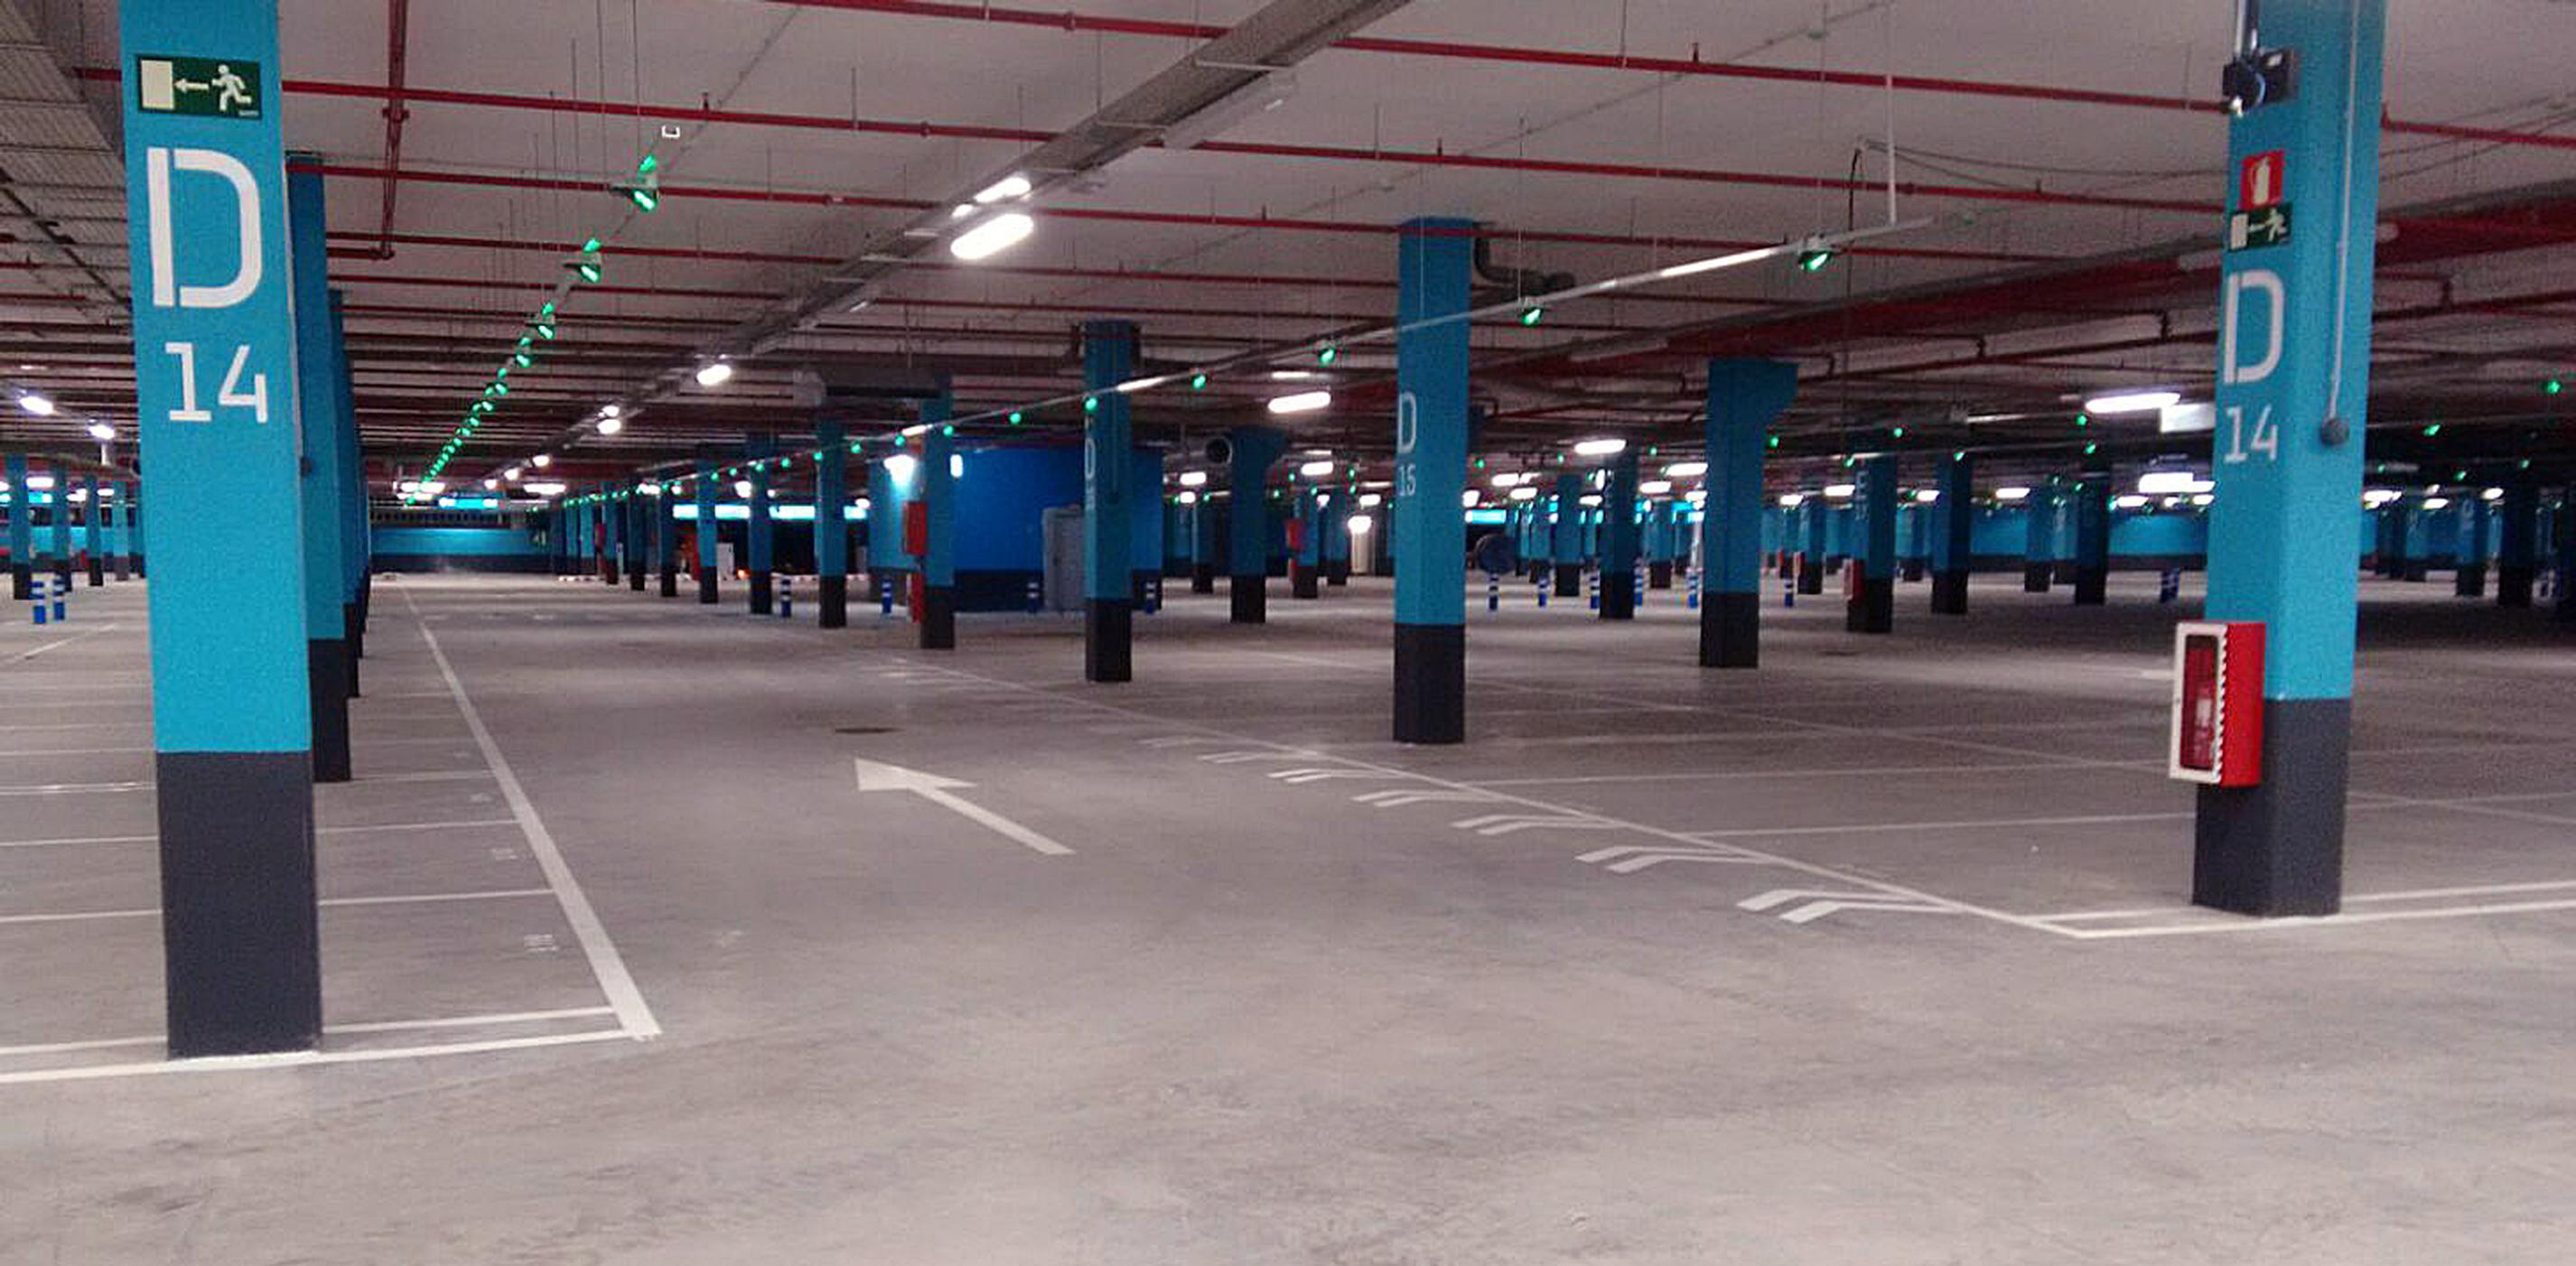 Parking at the Los Alisios shopping mall in Gran Canaria